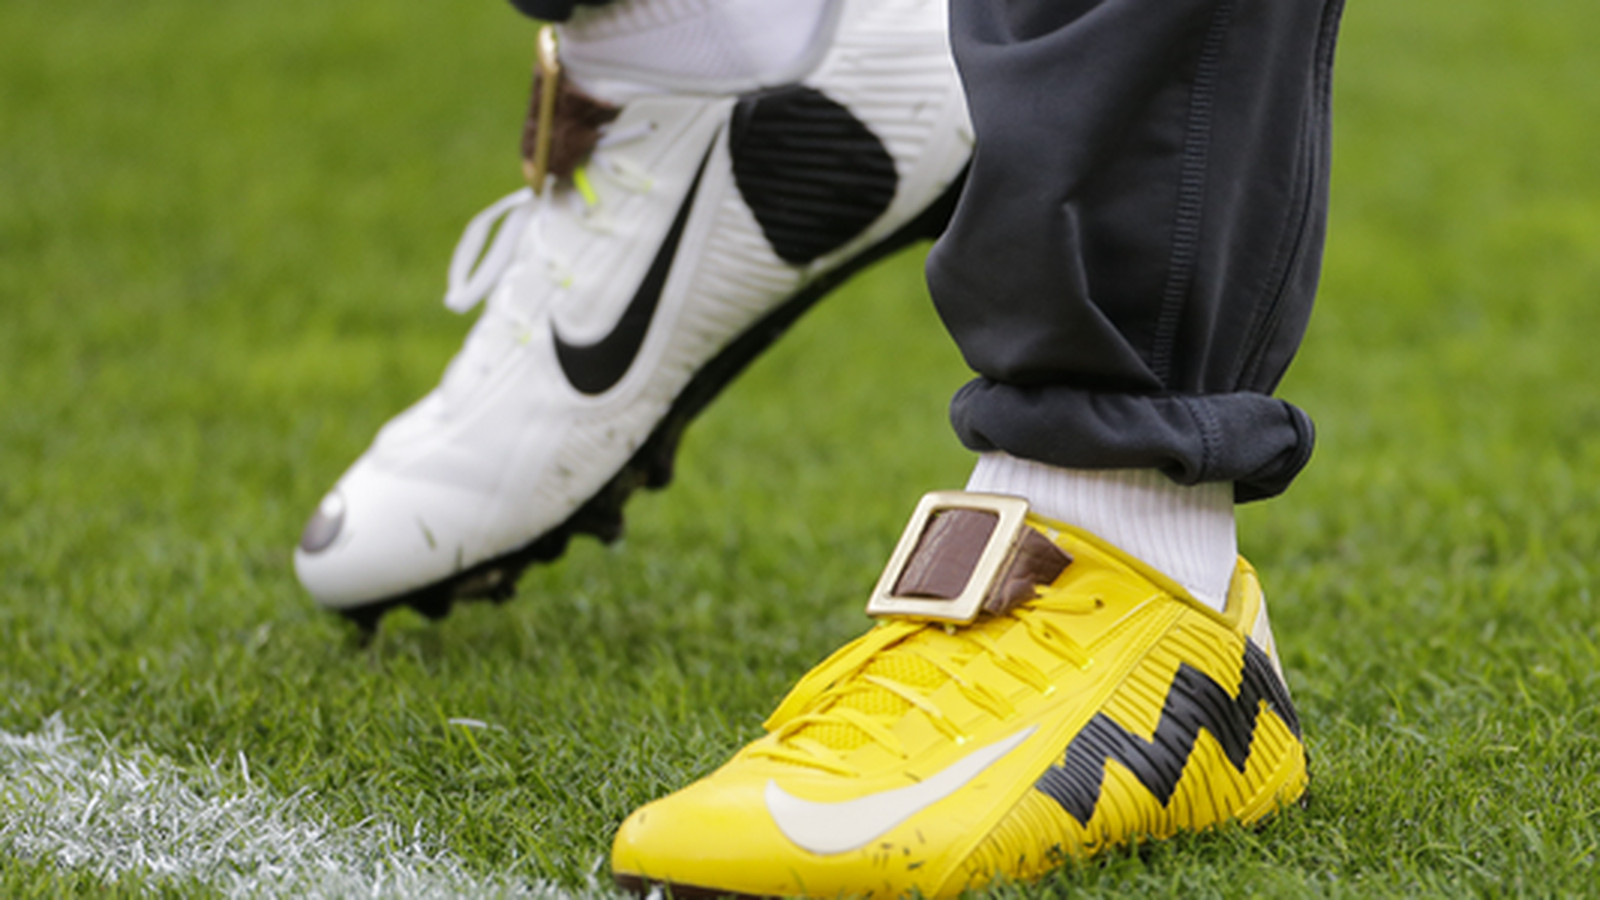 Steelers Golf Shoes